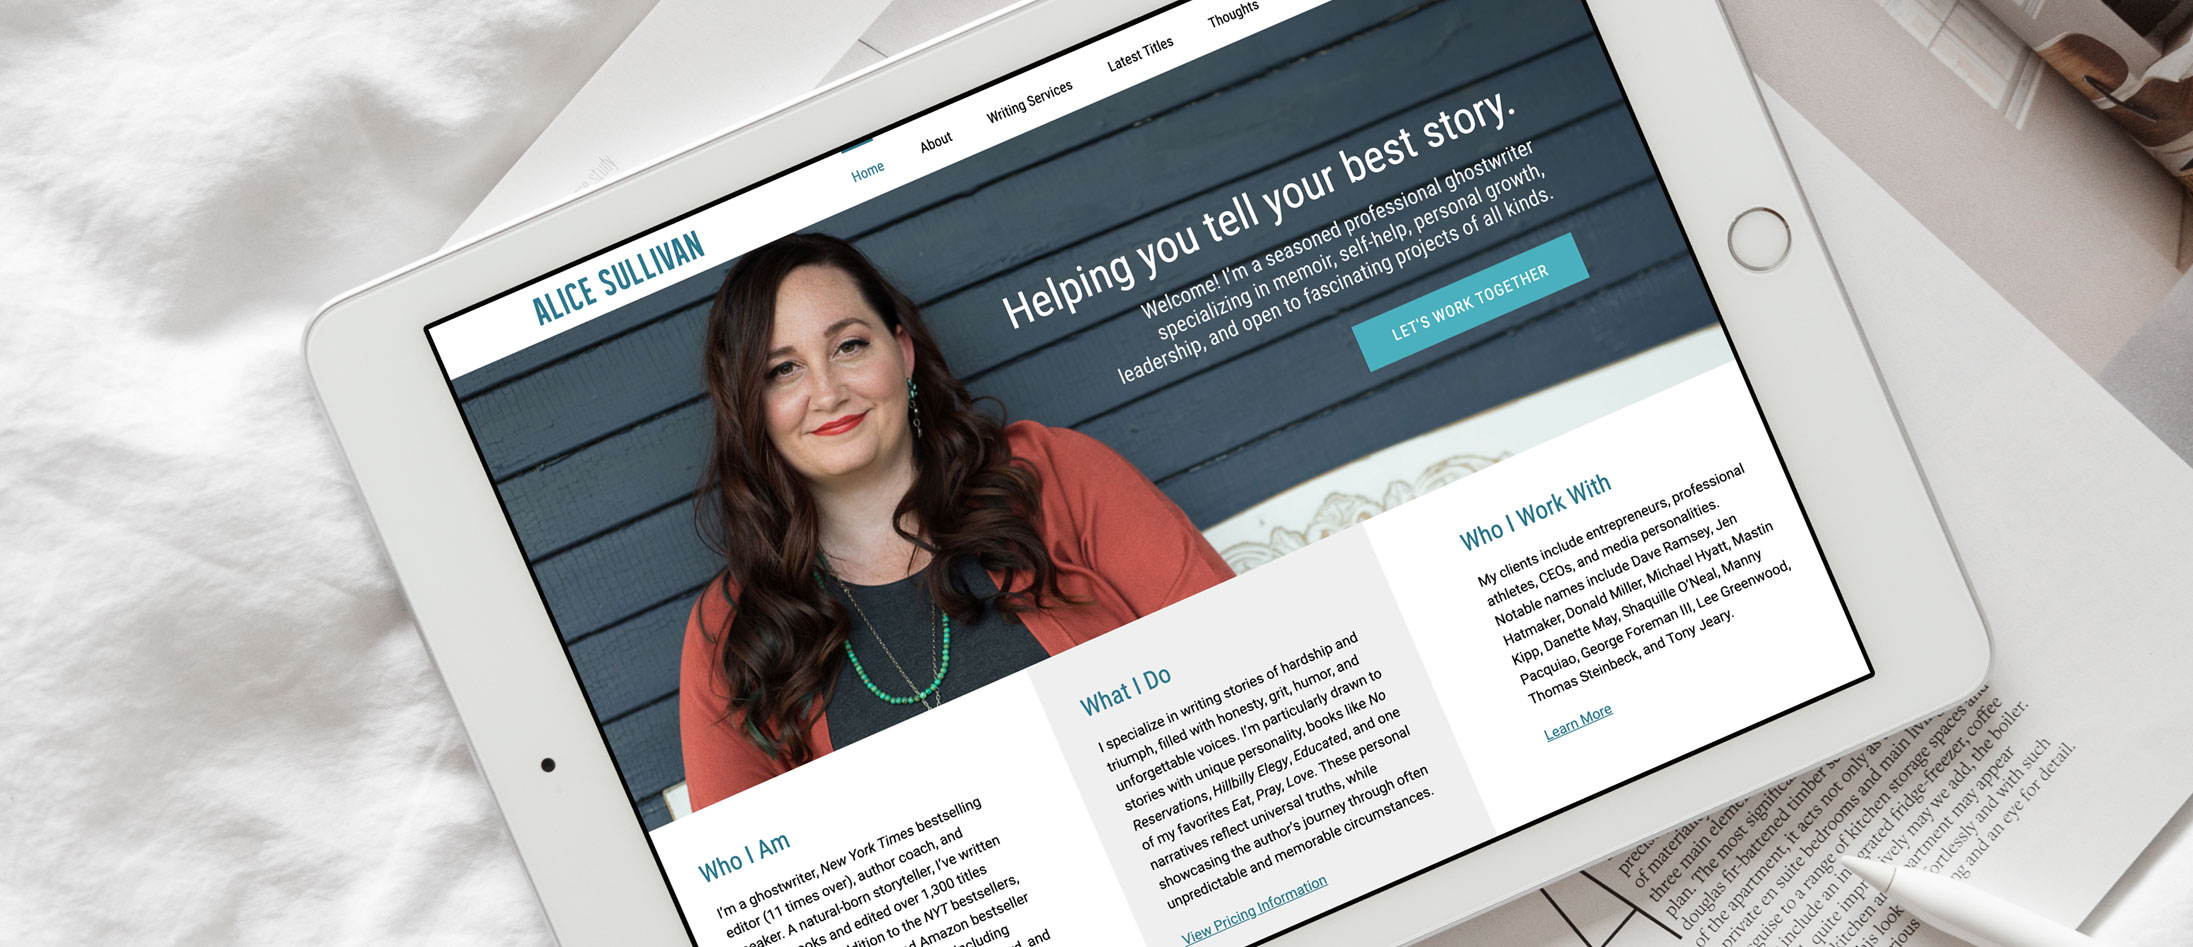 Alice Sullivan Cleveland WordPress Web Design